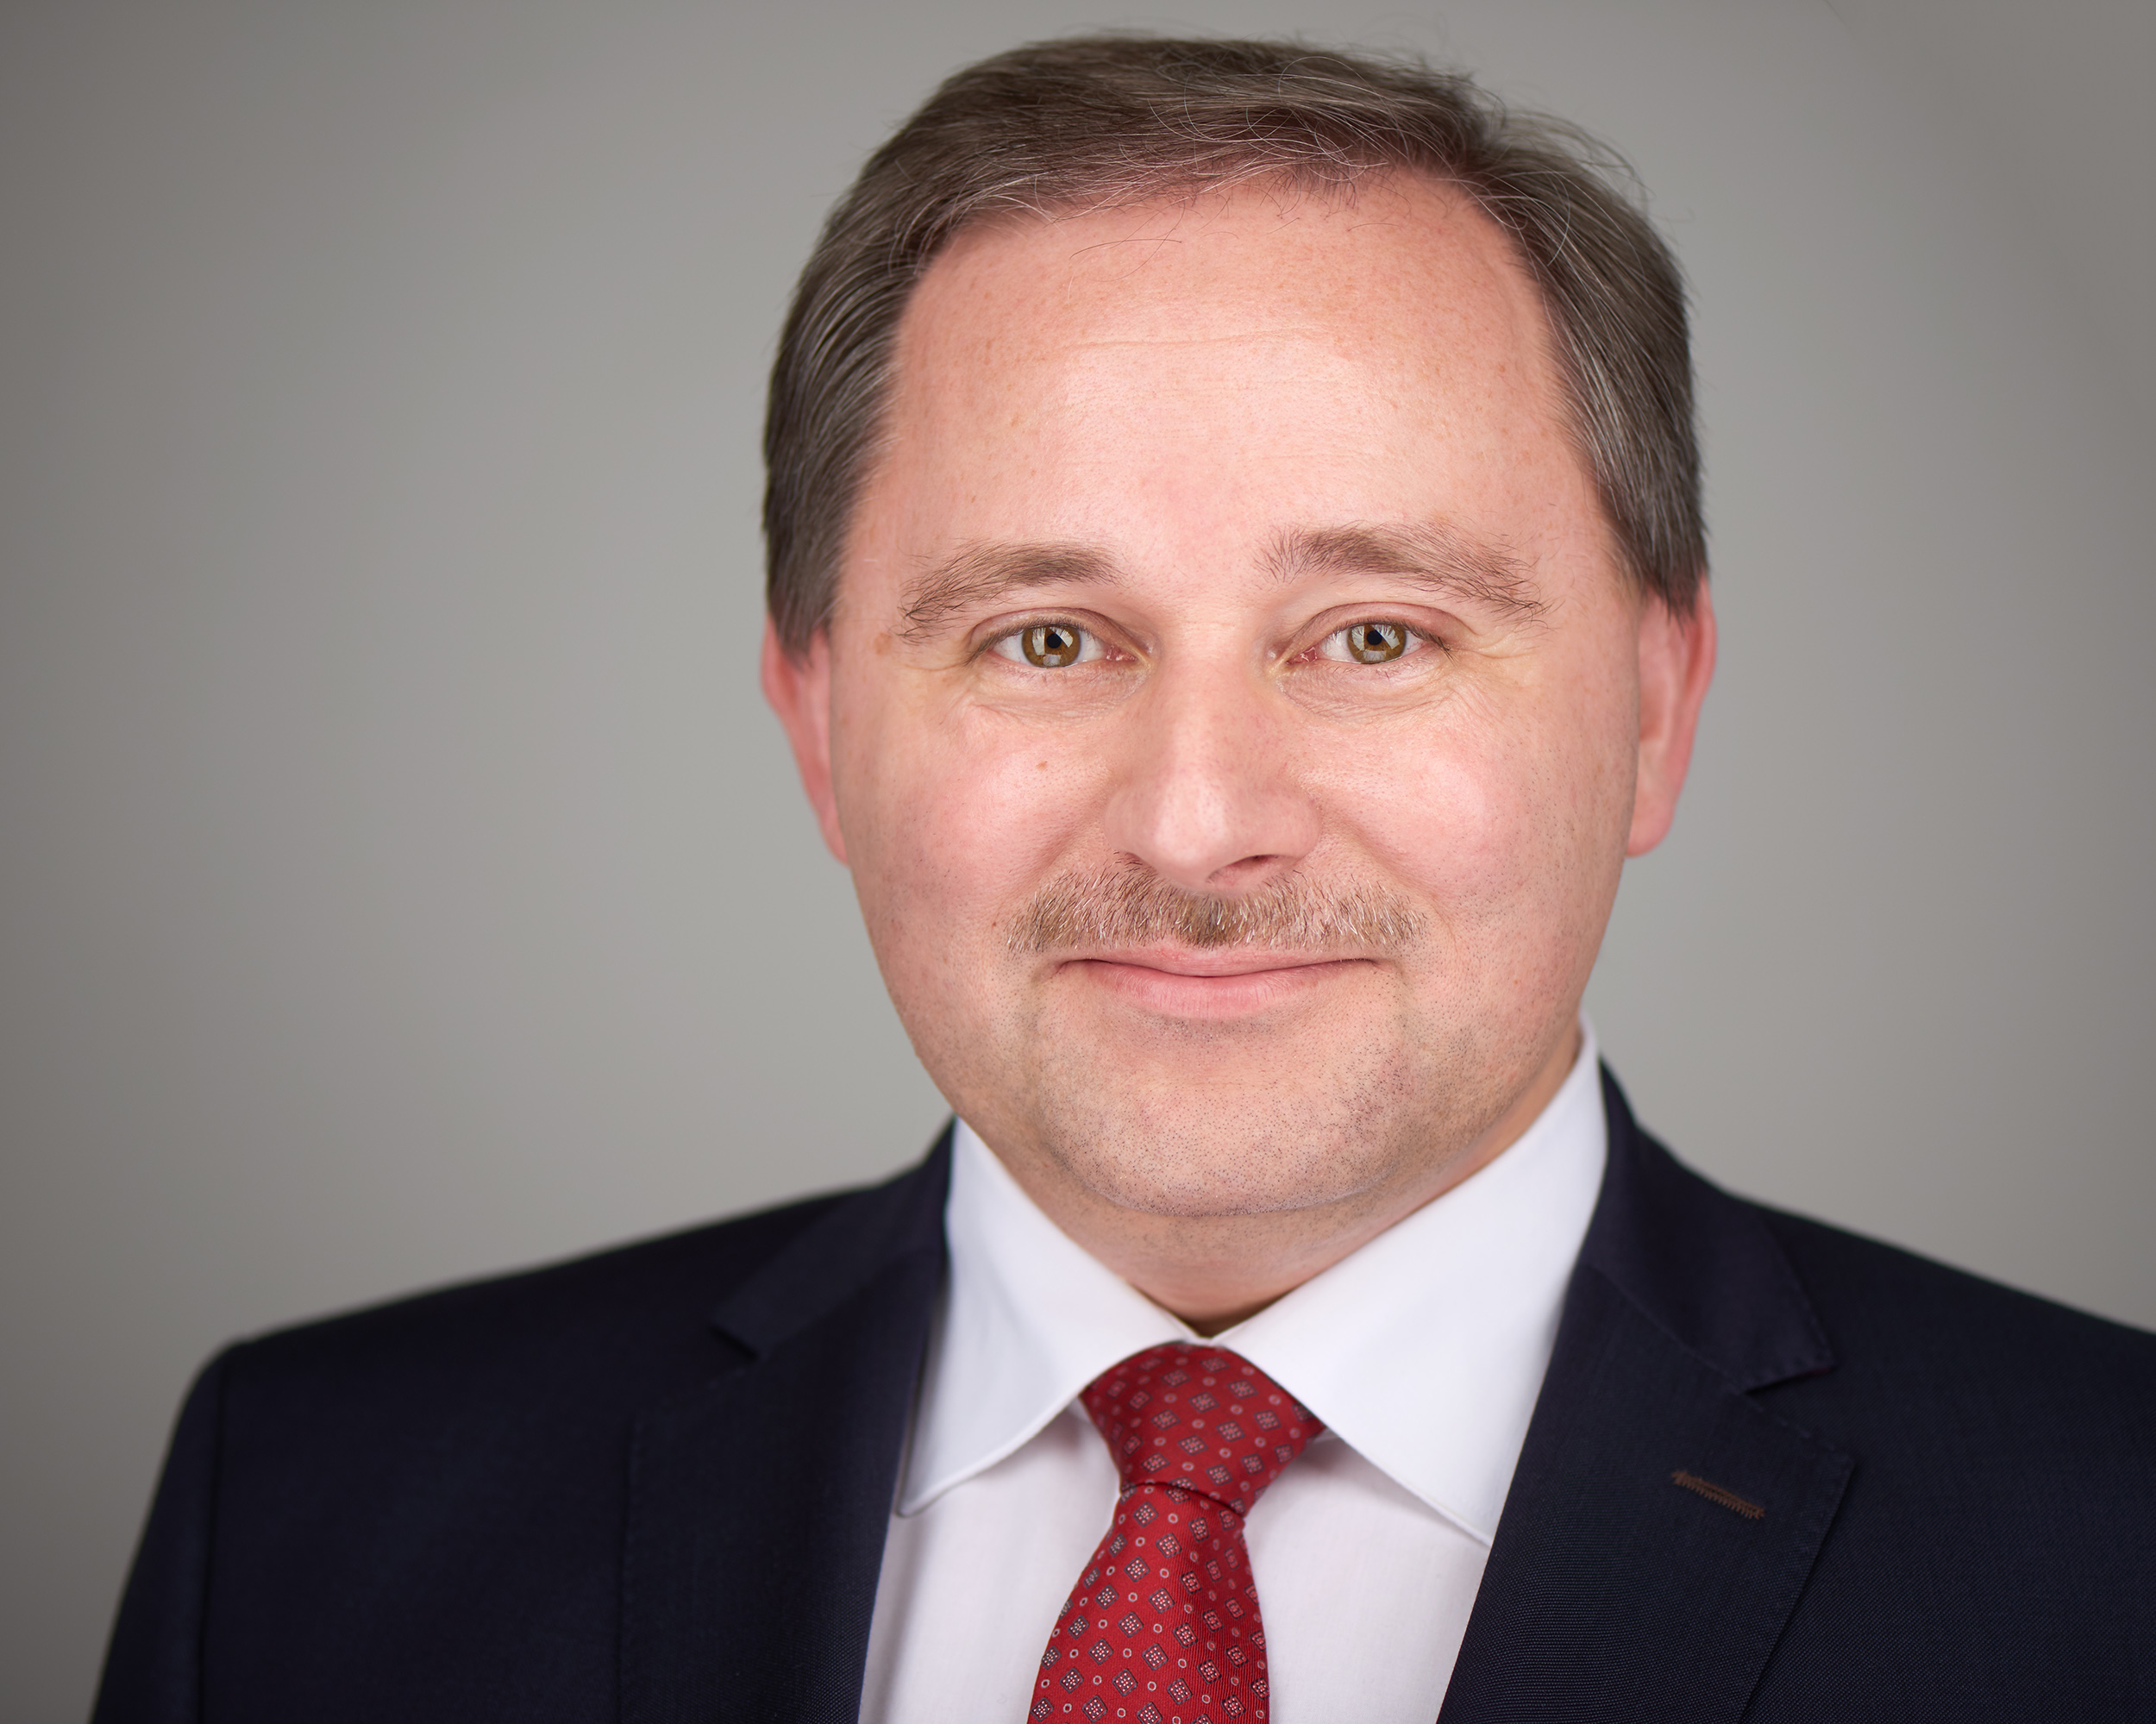 Gábor Kaczmarczyk - Gábor worked for the U.S. Embassy in Hungary between 1991 and 2005, and then again between 2015 and 2017, spending most of his time as a Commercial Specialist with the U.S. Commercial Service. His other work experience includes an HR consultancy firm, a bioethanol manufacturer and an oil and gas exploration firm. His industry sector expertise includes automotive, chemicals, energy, environmental technologies, FMCG, franchise, industrial processes, machinery, manufacturing, and oil and gas exploration.